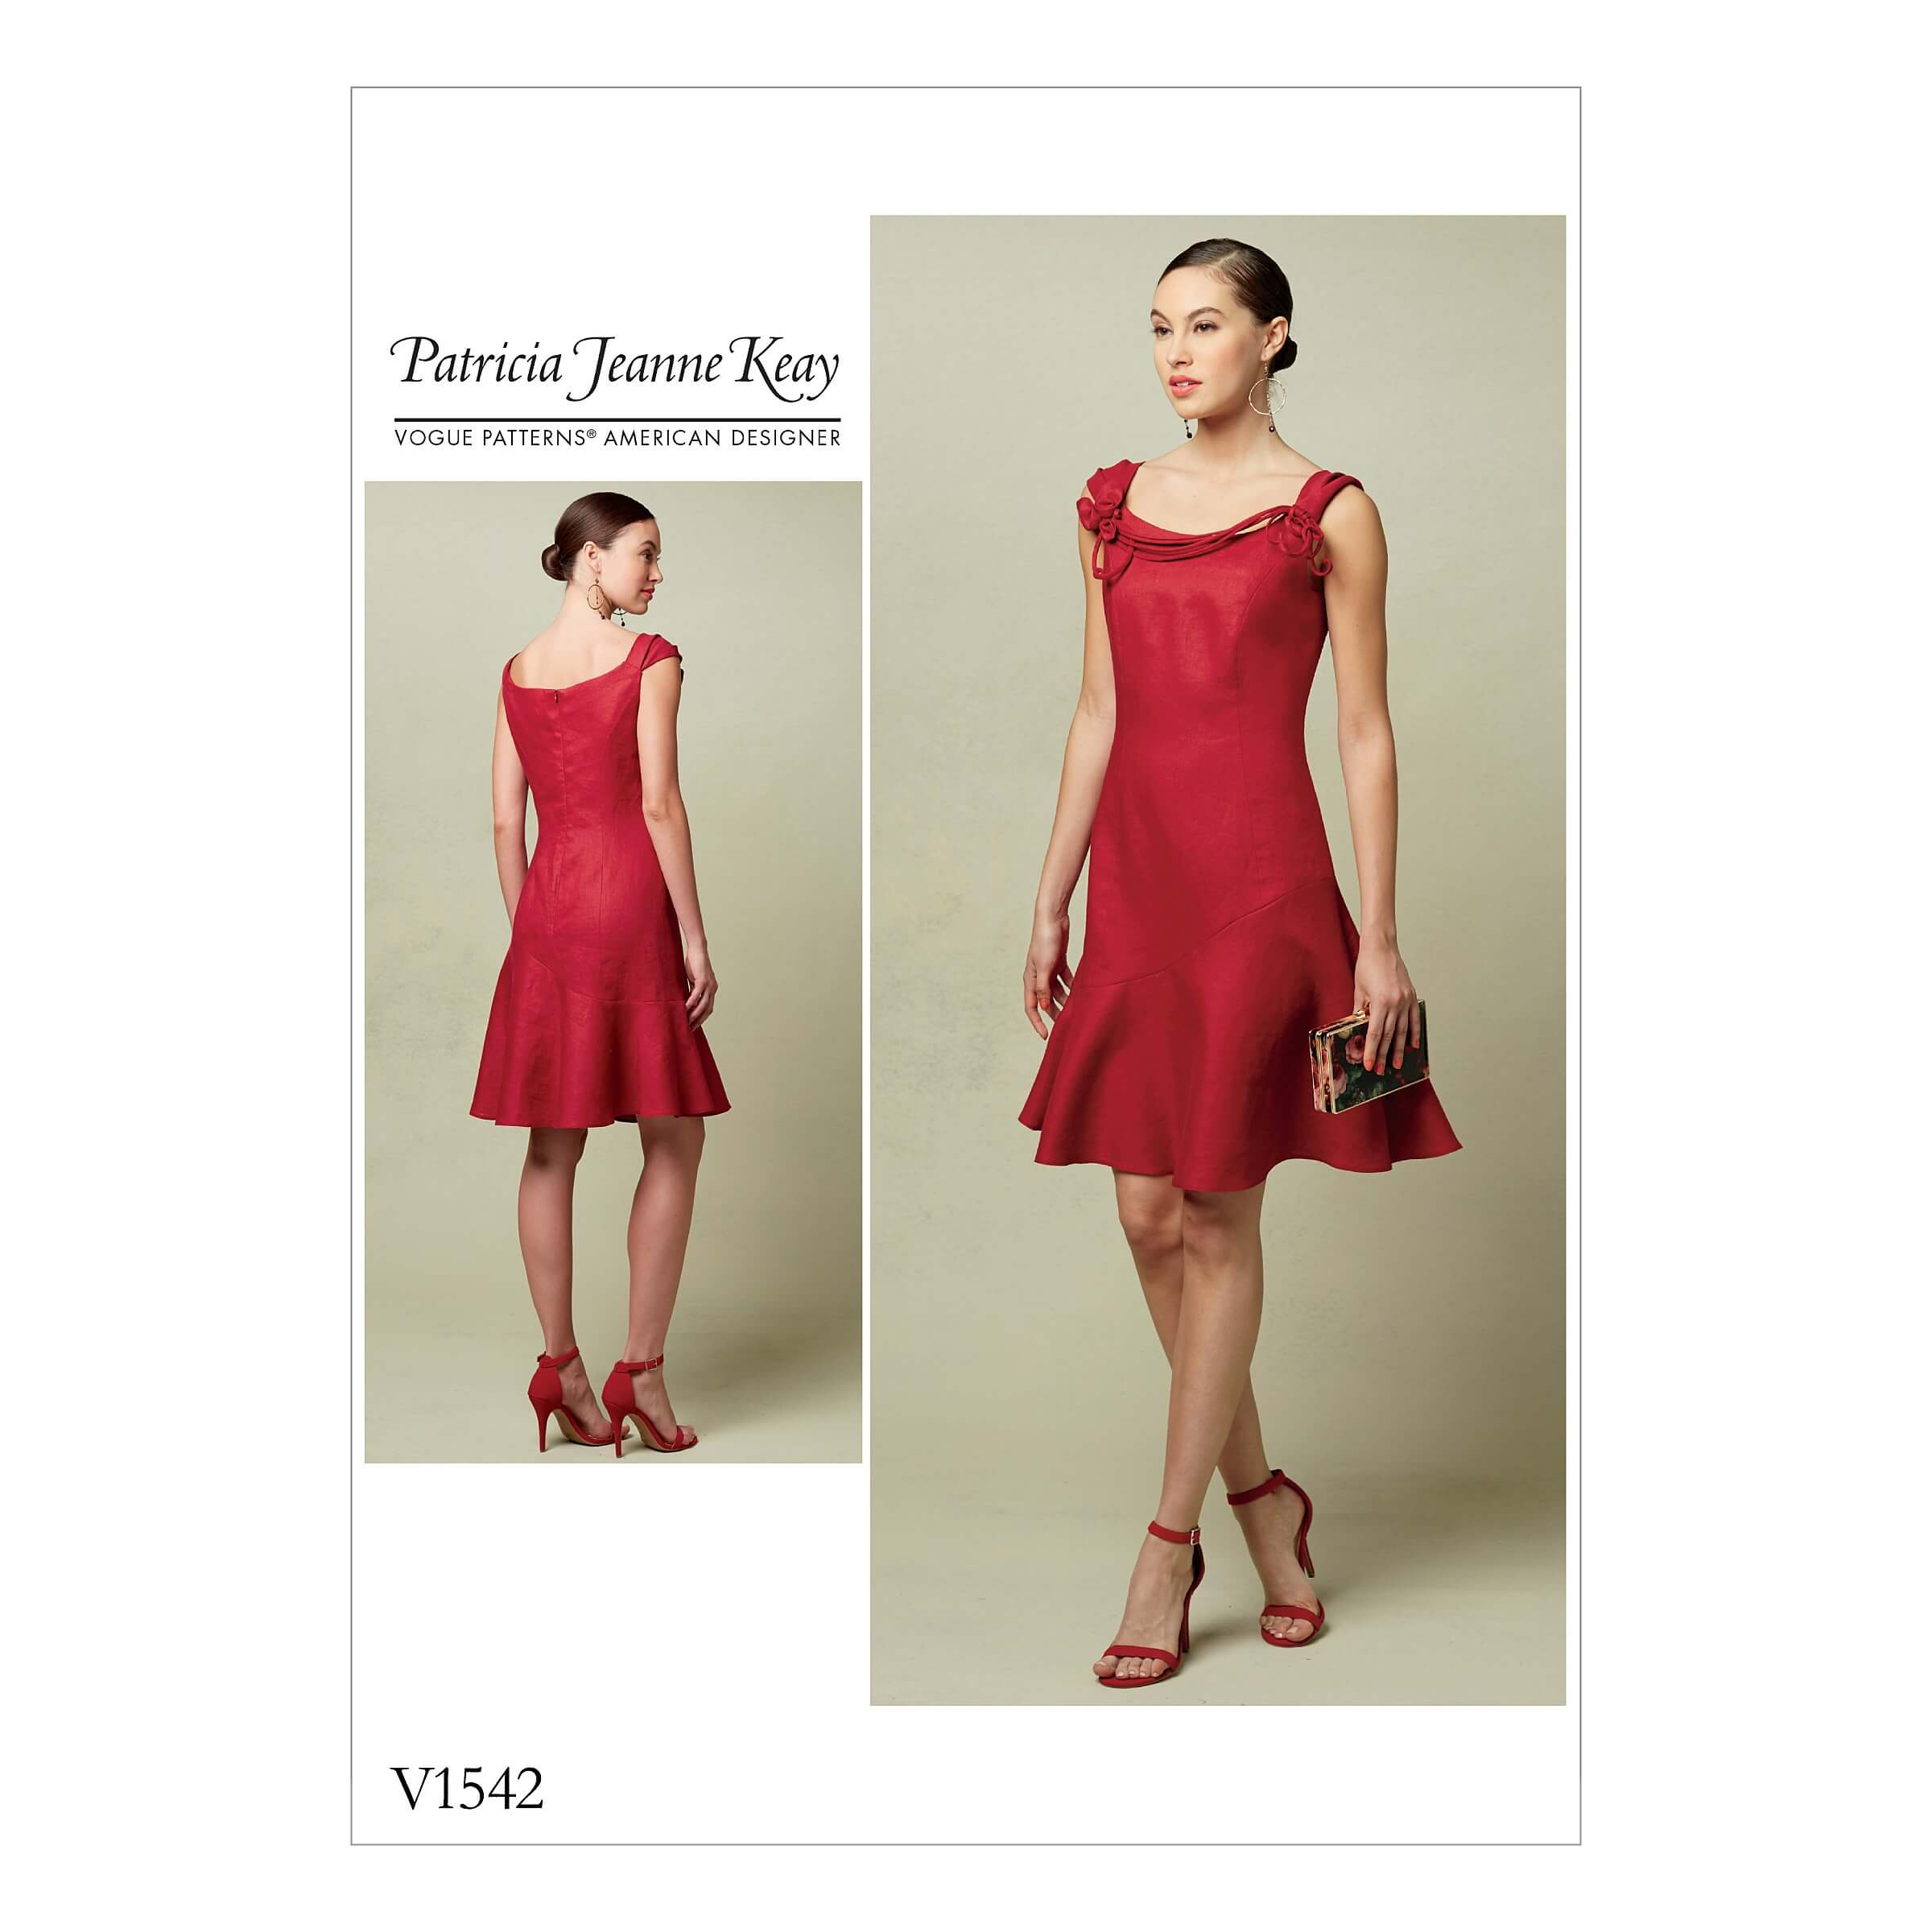 Vogue Sewing Pattern V1542 Women's Flounced Dress with Shoulder Detail